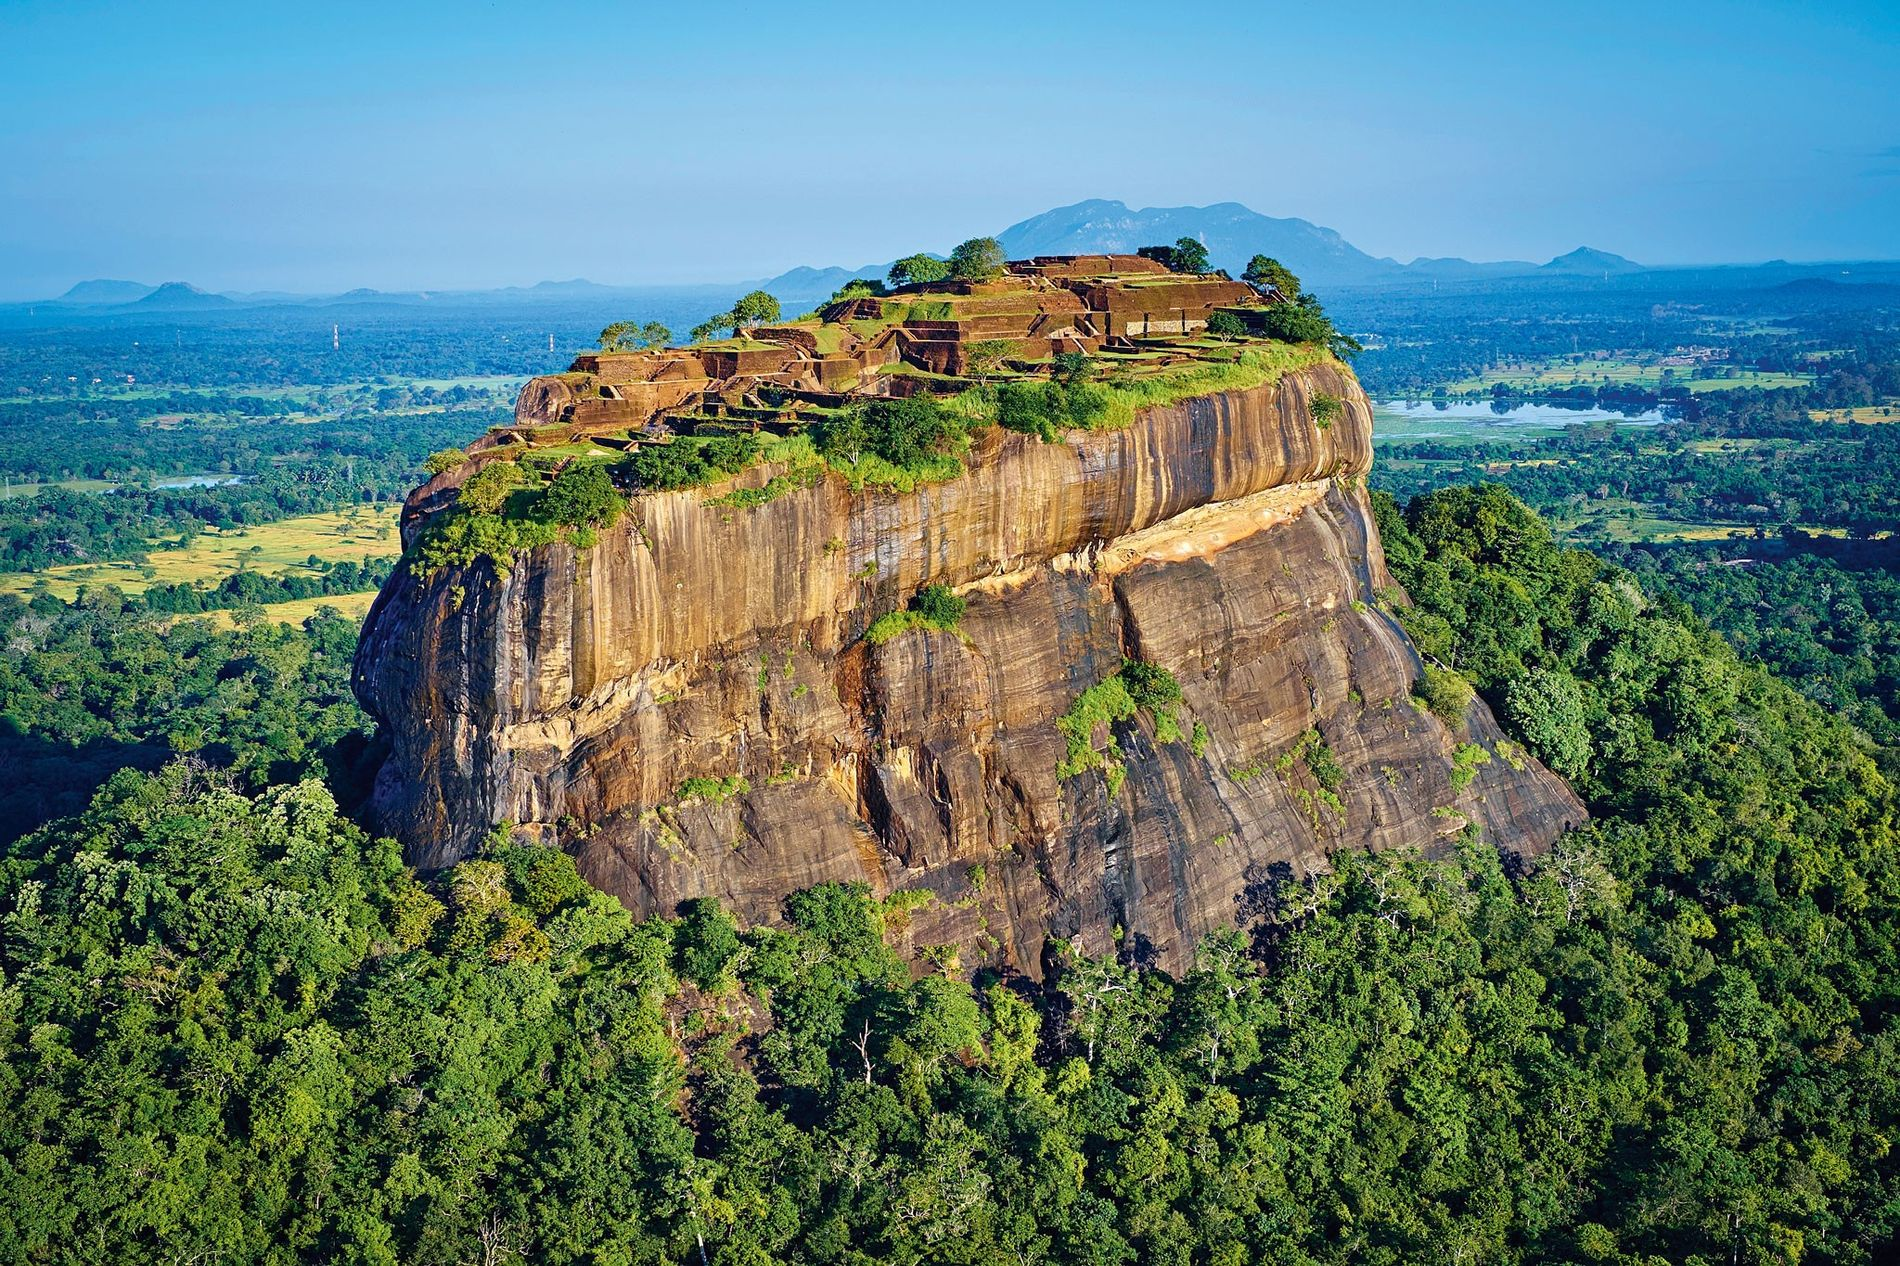 Jungle swathes the eastern face of the Sigiriya rock, topped with the citadel built by King Kashyapa I in the late fifth century A.D. in central Sri Lanka.